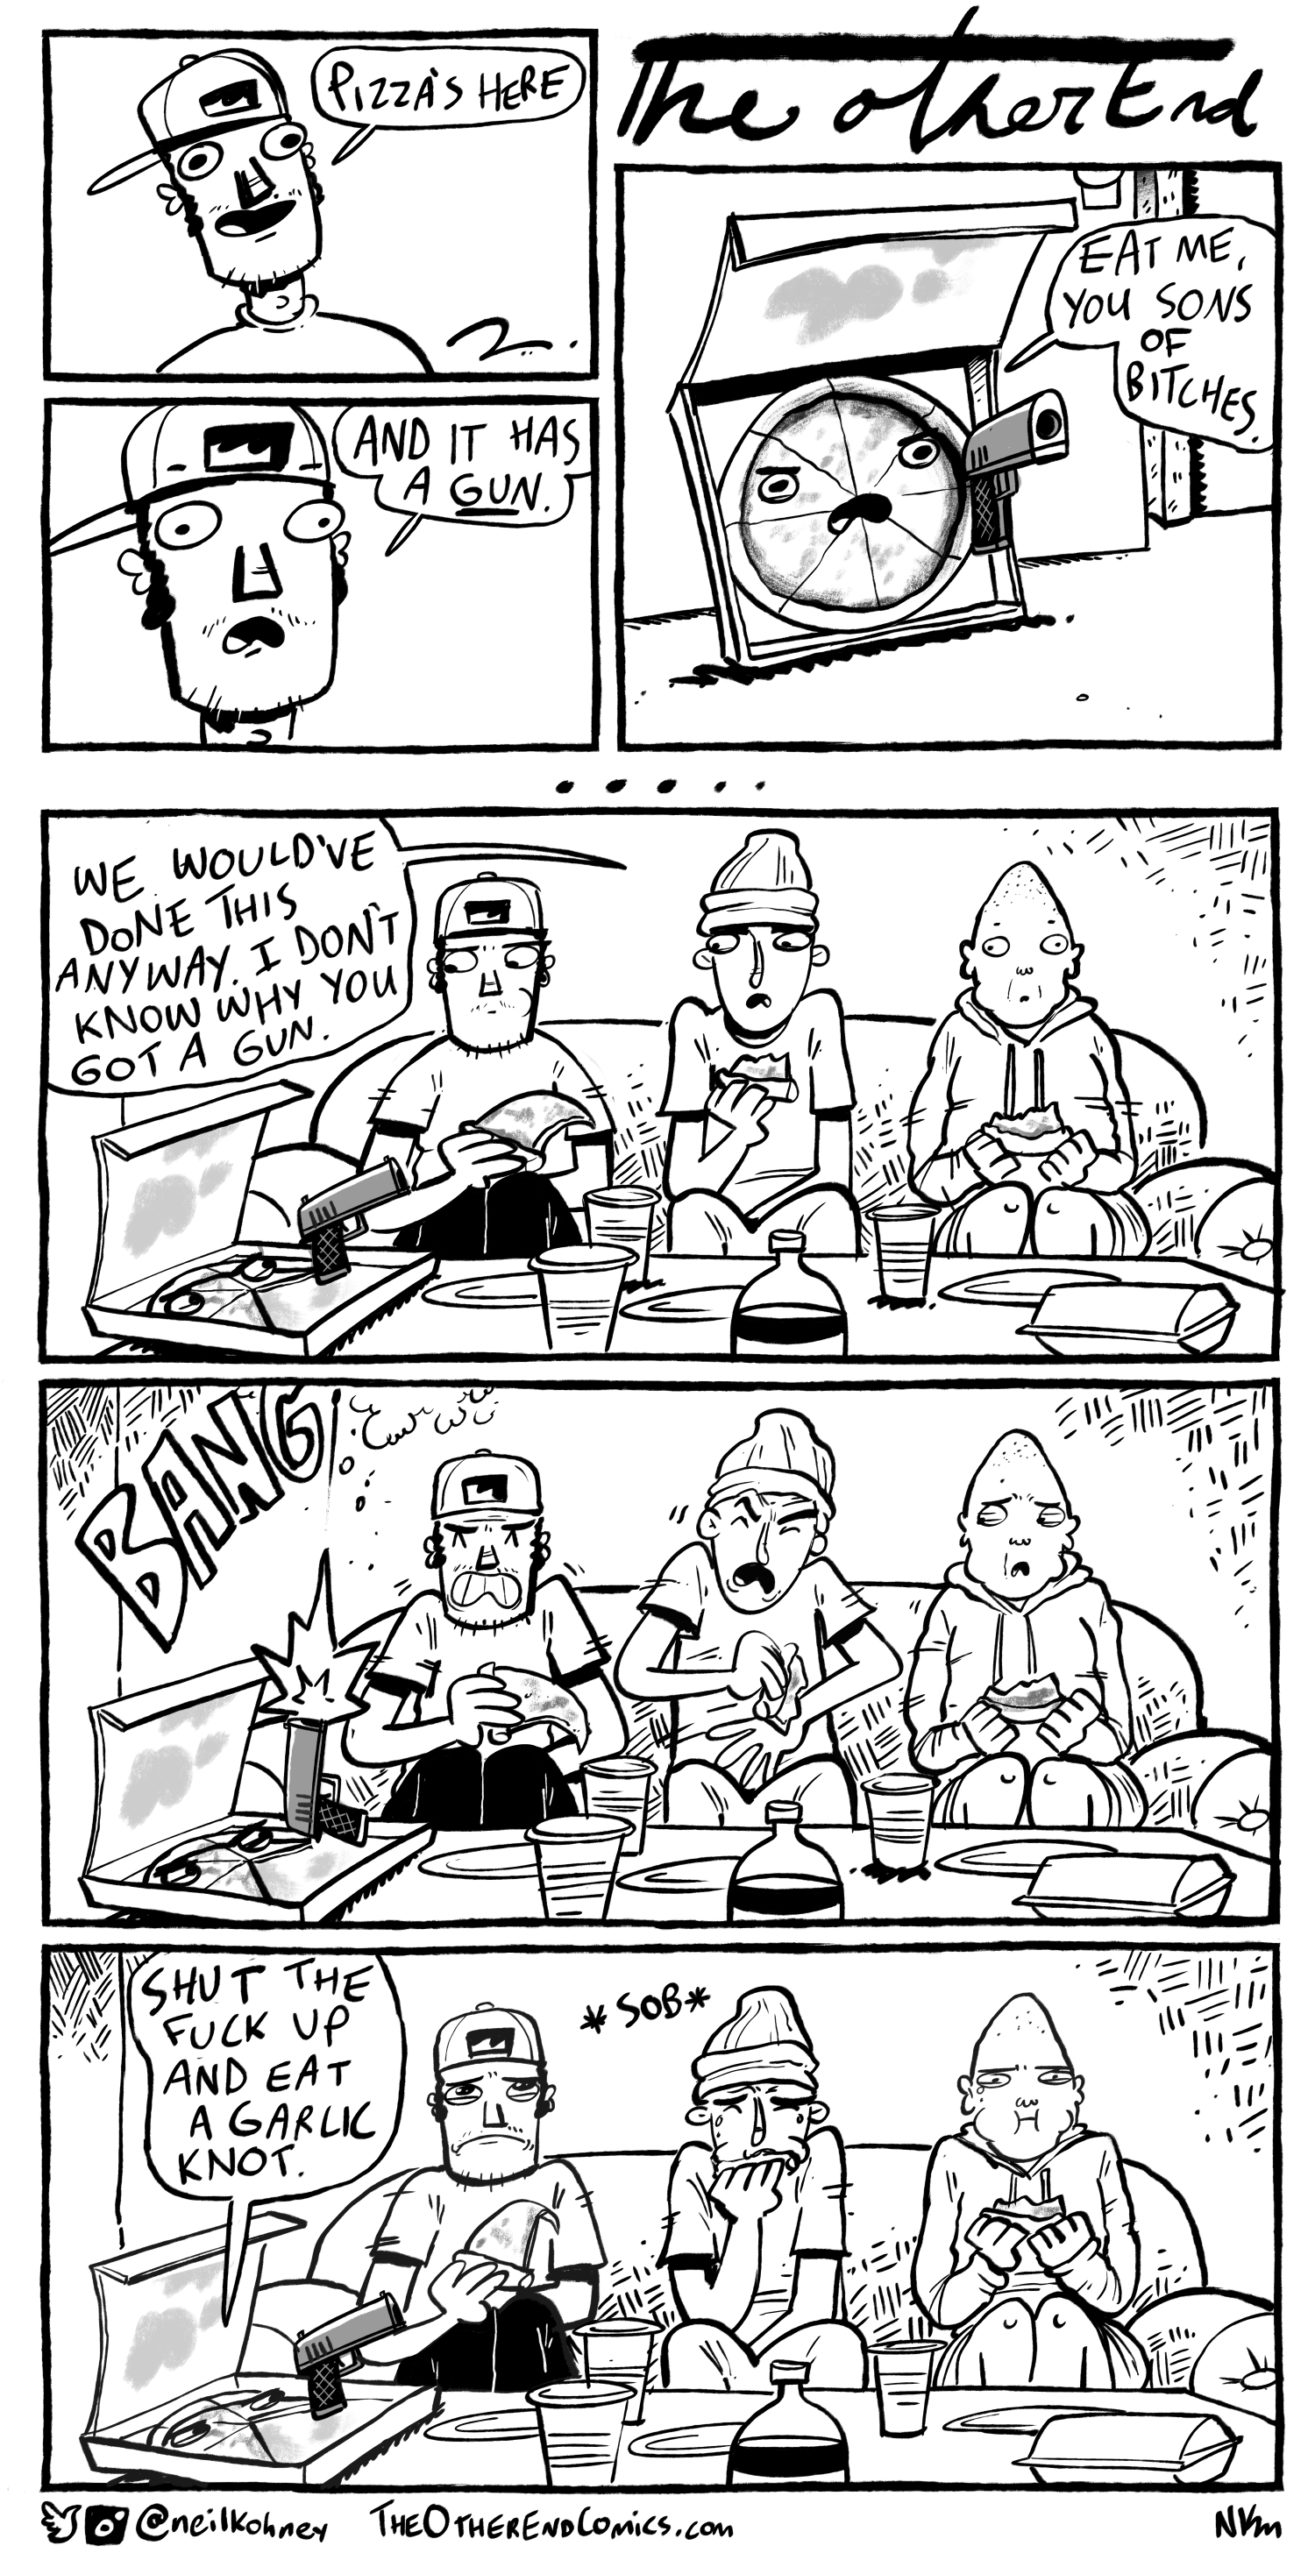 It's pizza night with the bros and they just order cheese and some knots? This comic is so fake